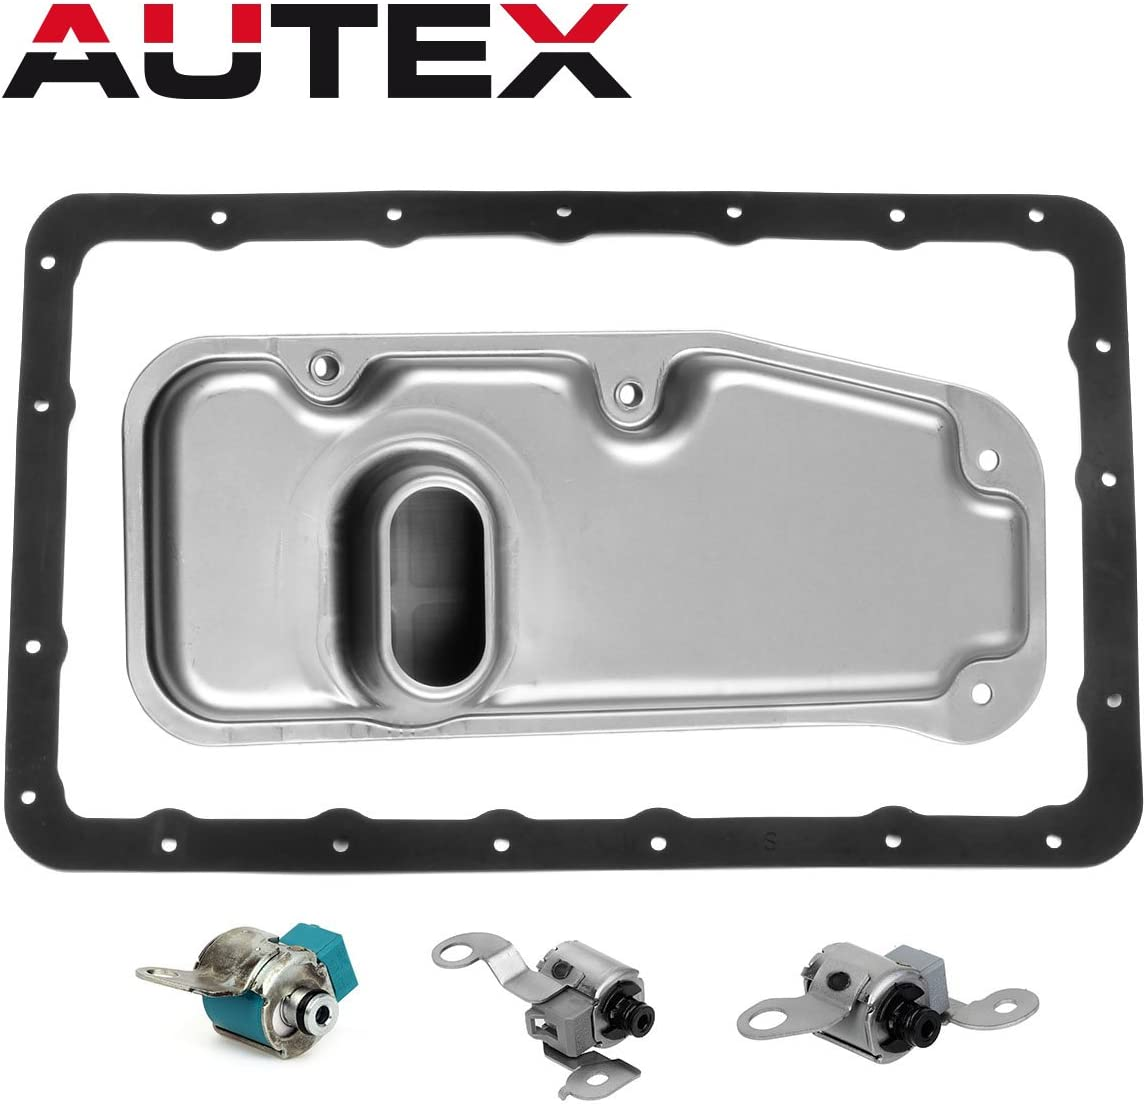 87-93 Jeep Wagoneer 87-01 Jeep Cherokee 91 92 93 Jeep Grand Cherokee AUTEX A340E A340F Transmission Master Shift TCC Lock Up Solenoid /& Filter Gasket Kit Compatible With 90 91 92 Jeep Comanchee